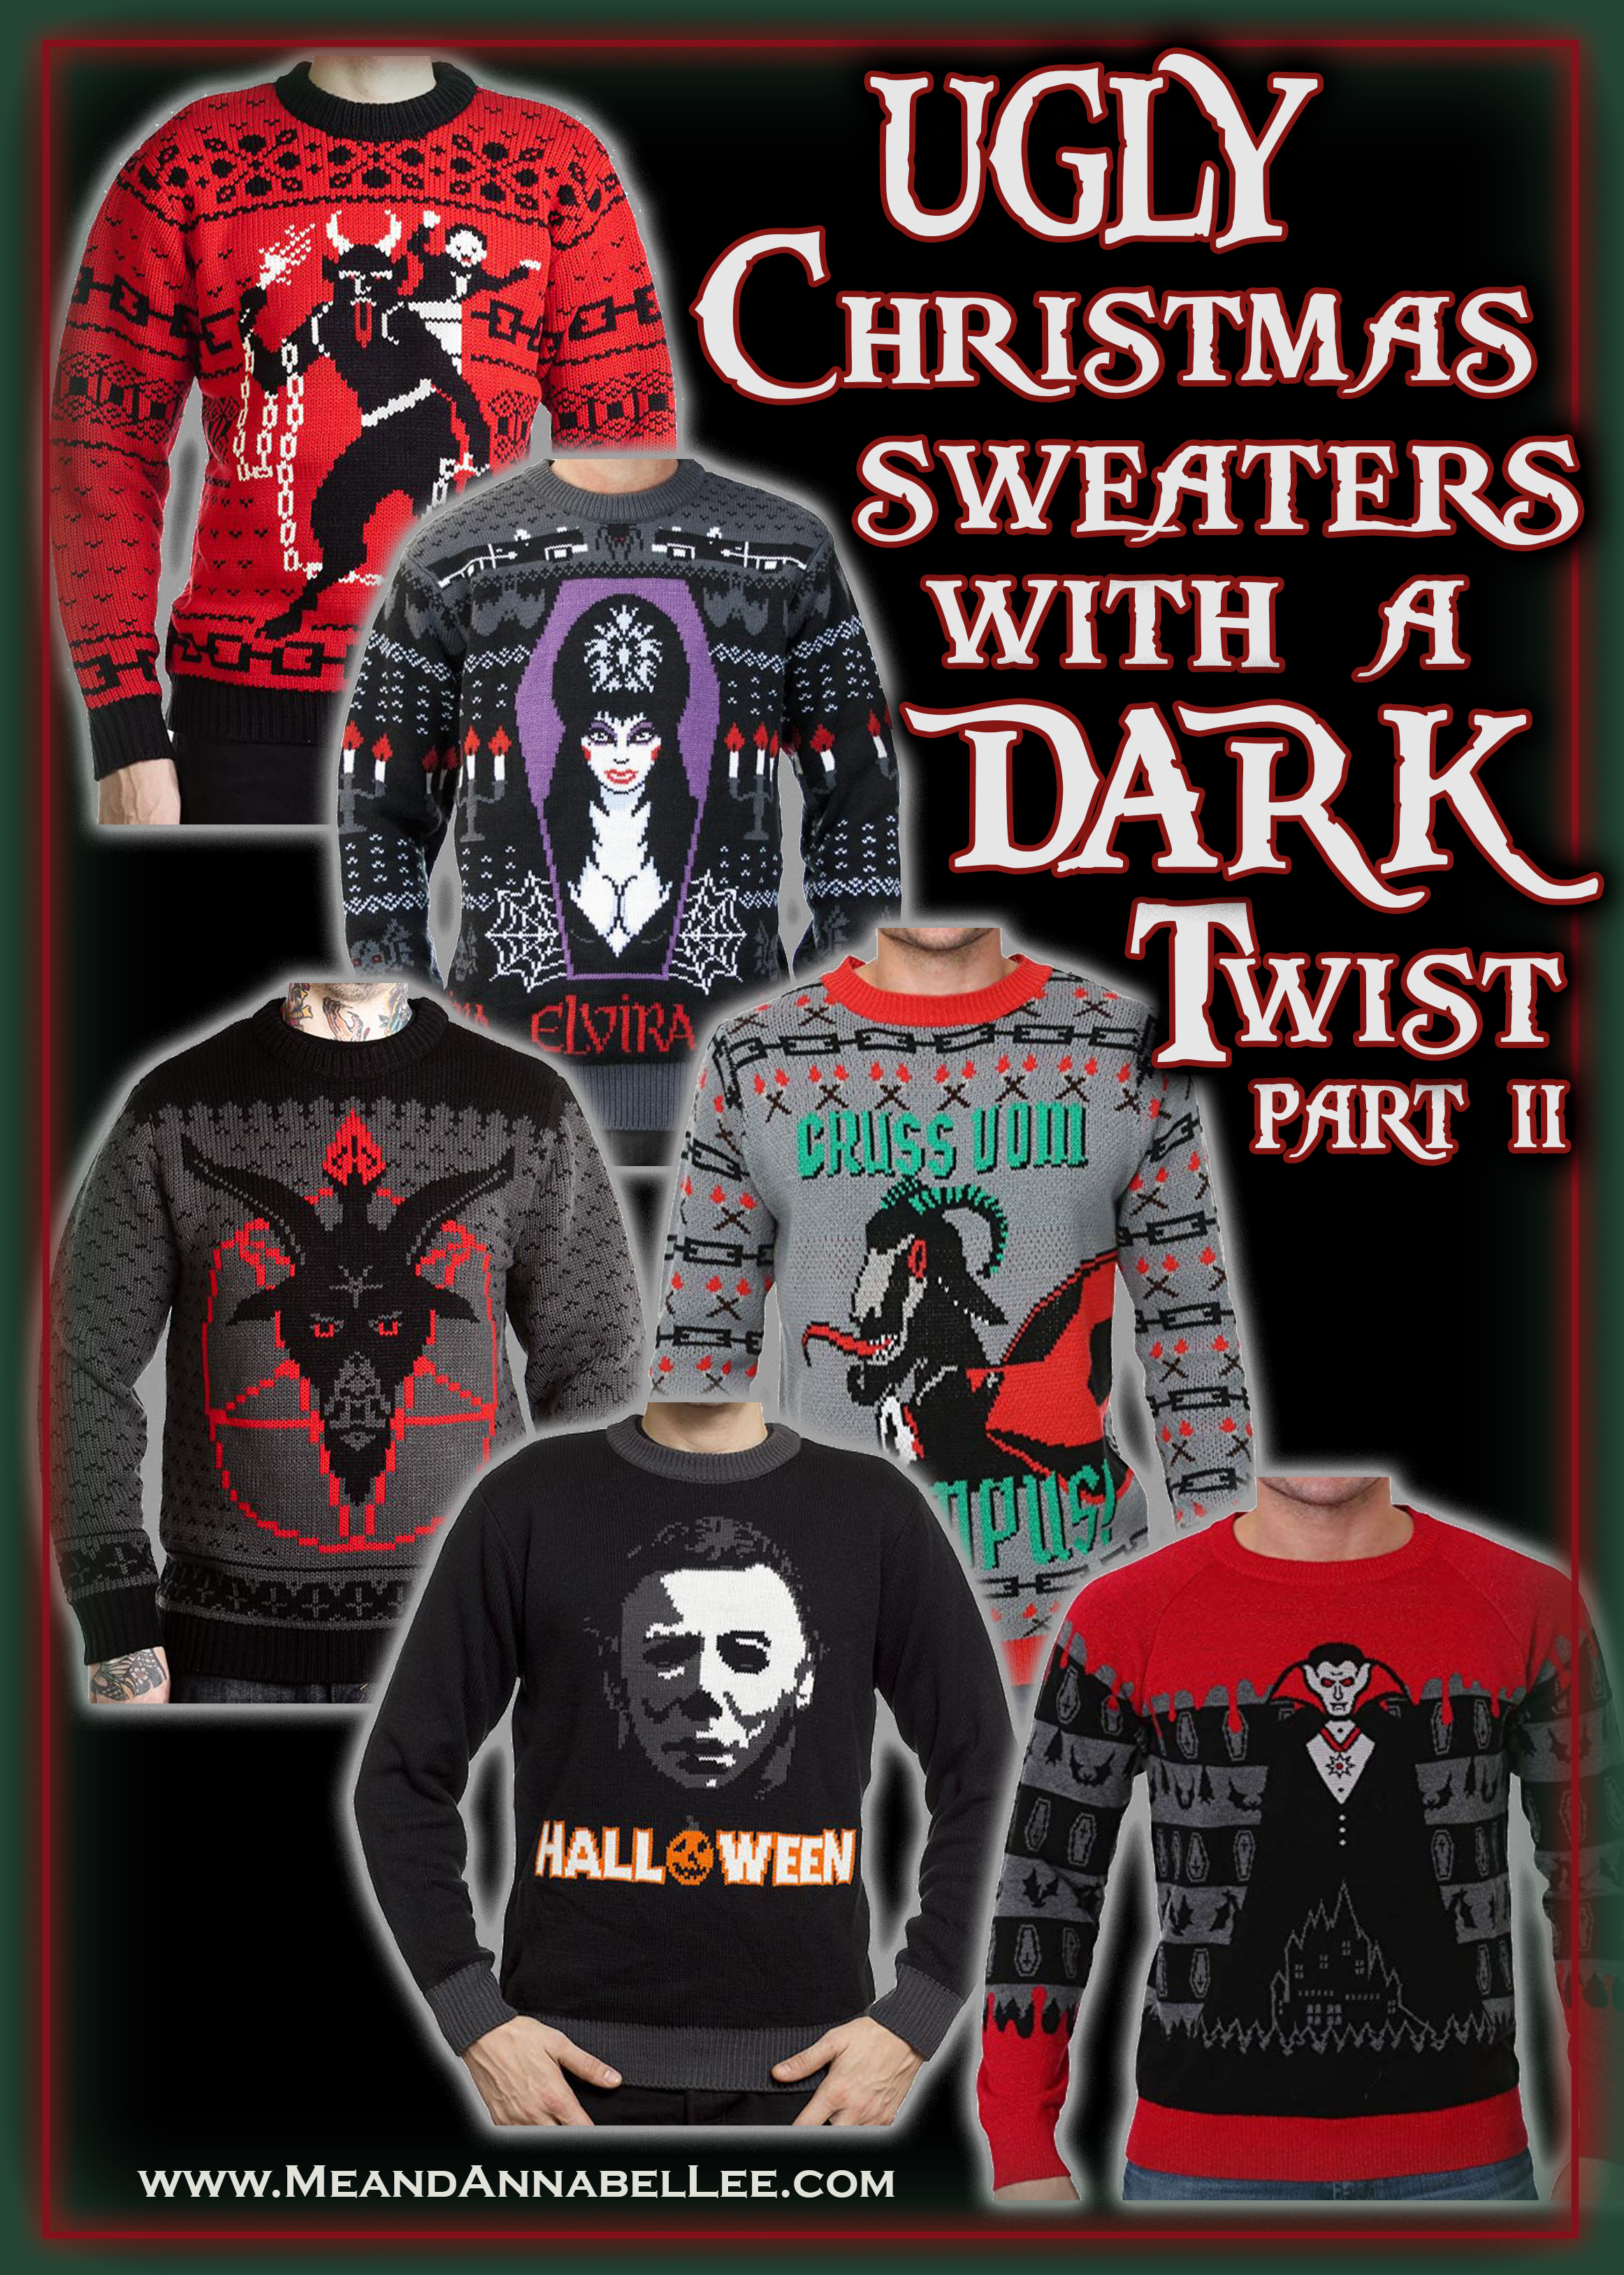 Heavy Metal Christmas Sweater 2020 Dark, Twisted, Gothic, & Creepy Ugly Christmas Sweaters | Me and